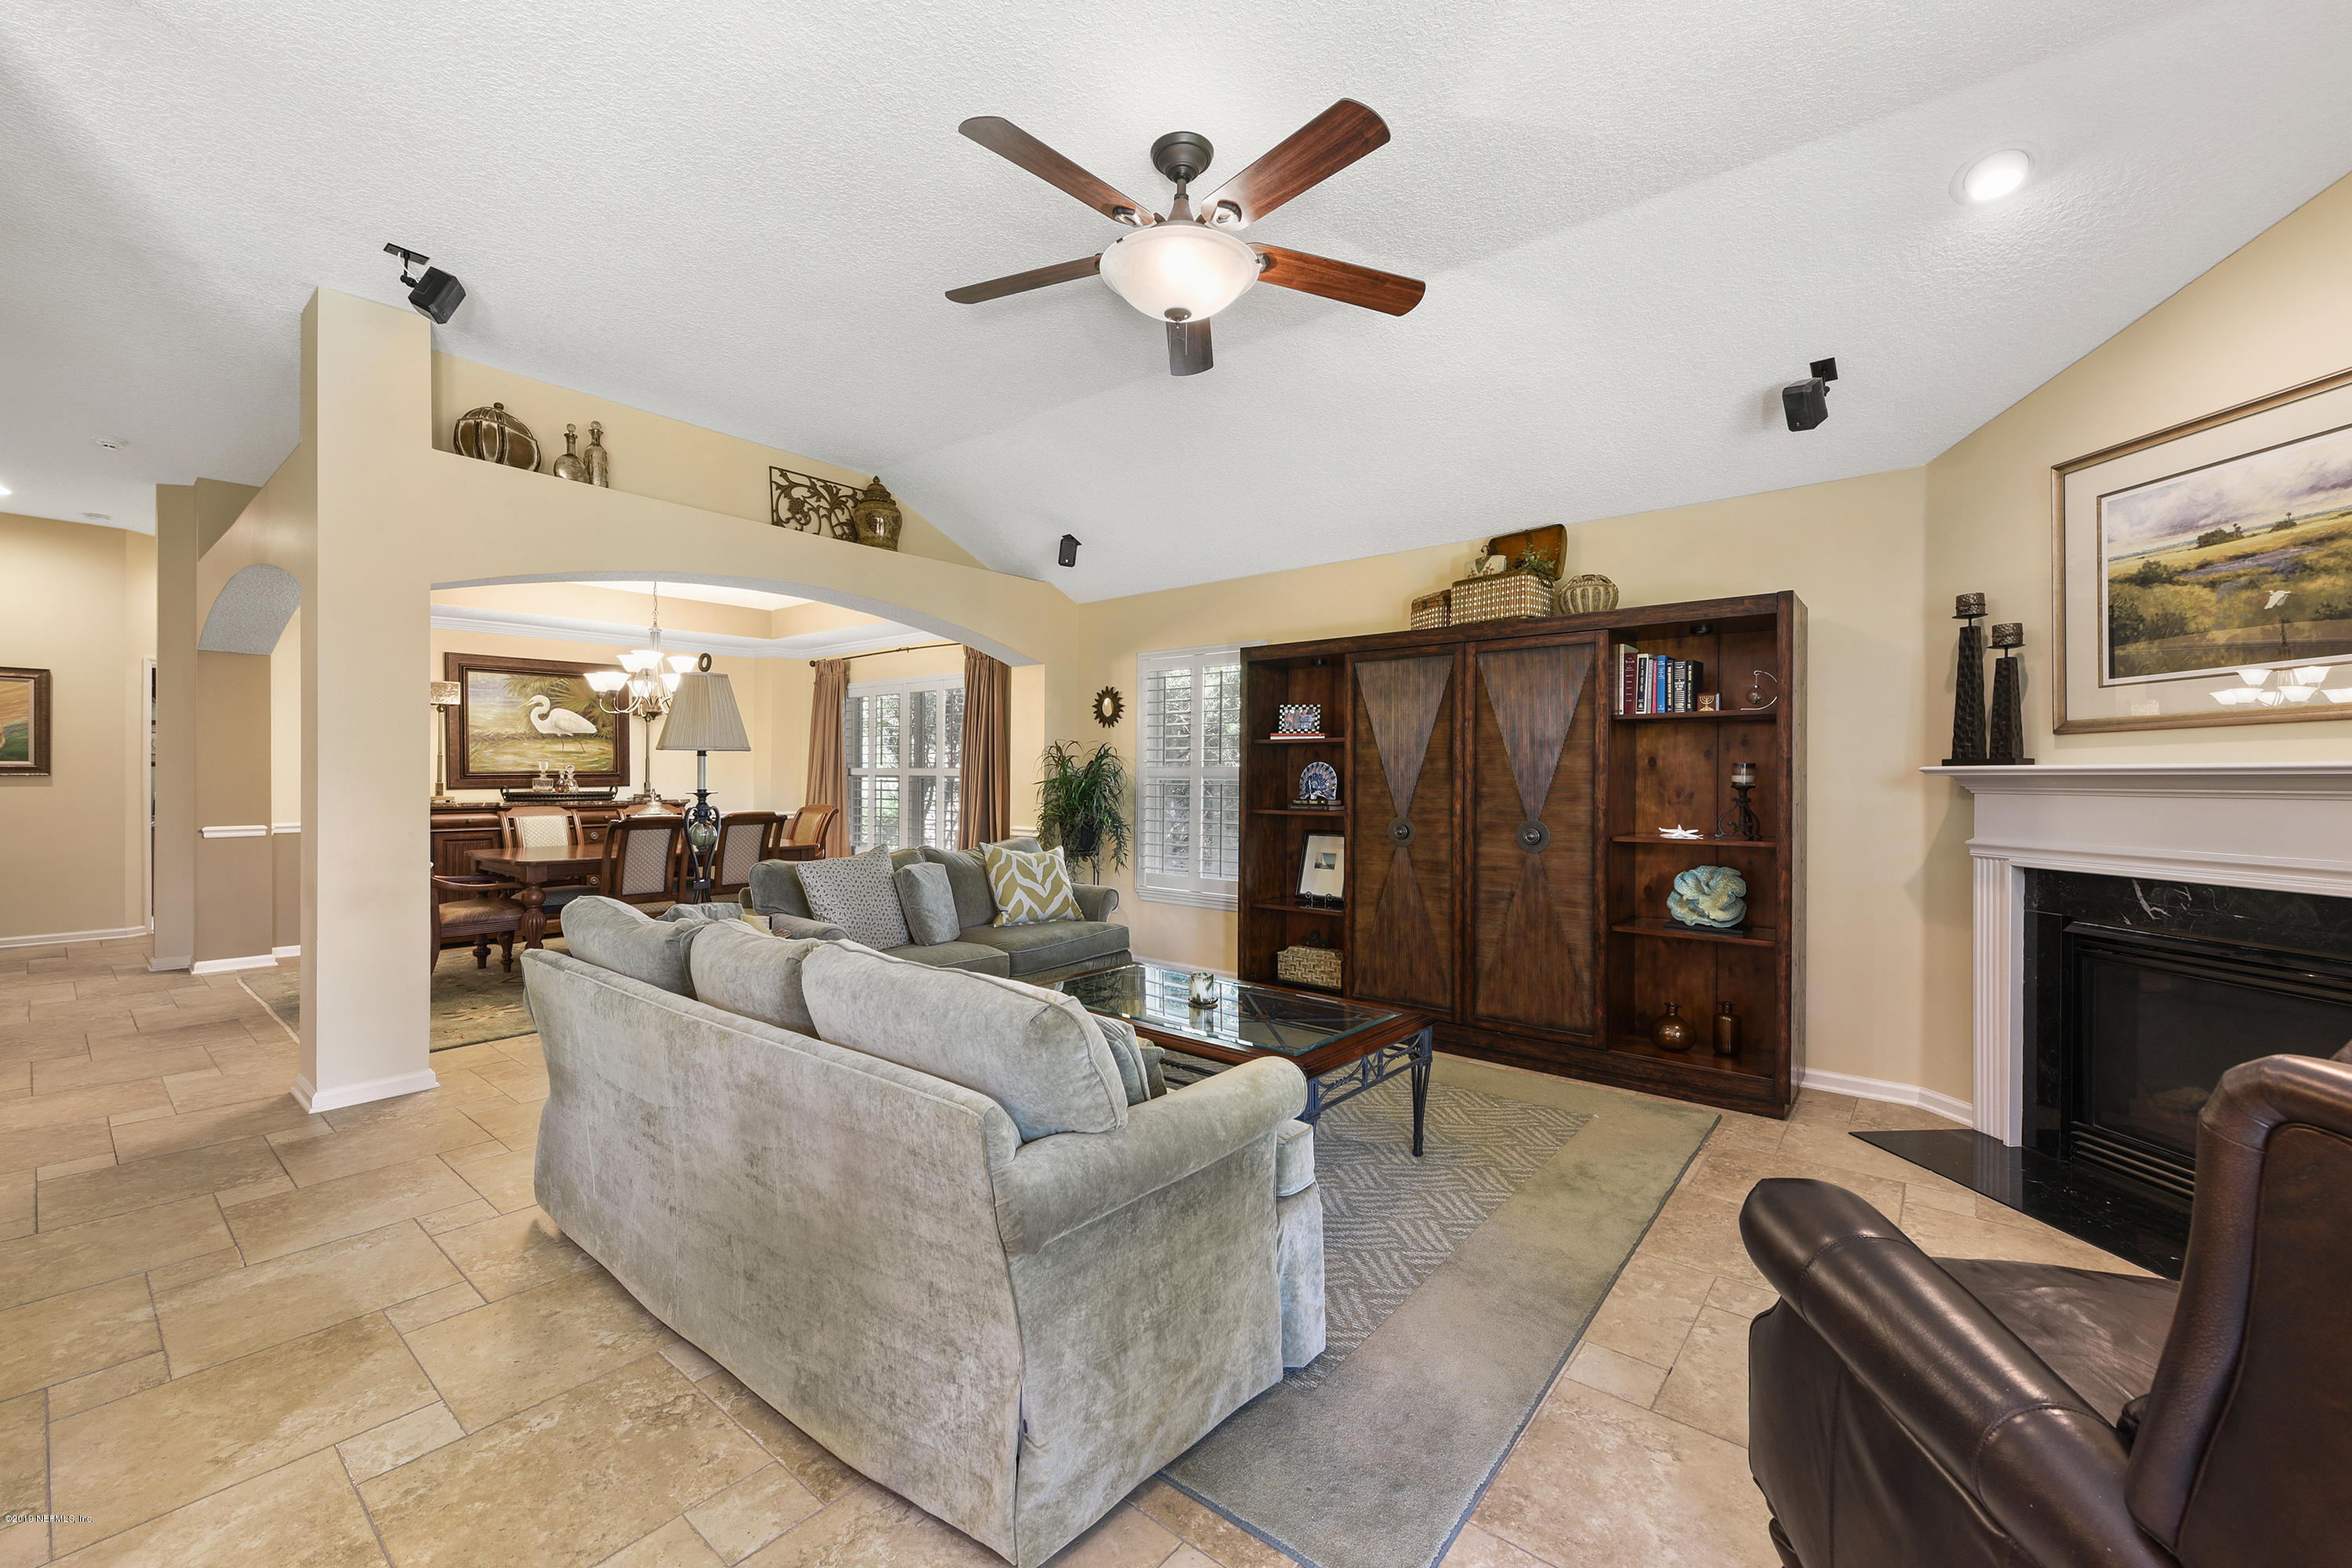 13772 SHADY WOODS, JACKSONVILLE, FLORIDA 32224, 4 Bedrooms Bedrooms, ,3 BathroomsBathrooms,Residential - single family,For sale,SHADY WOODS,994171